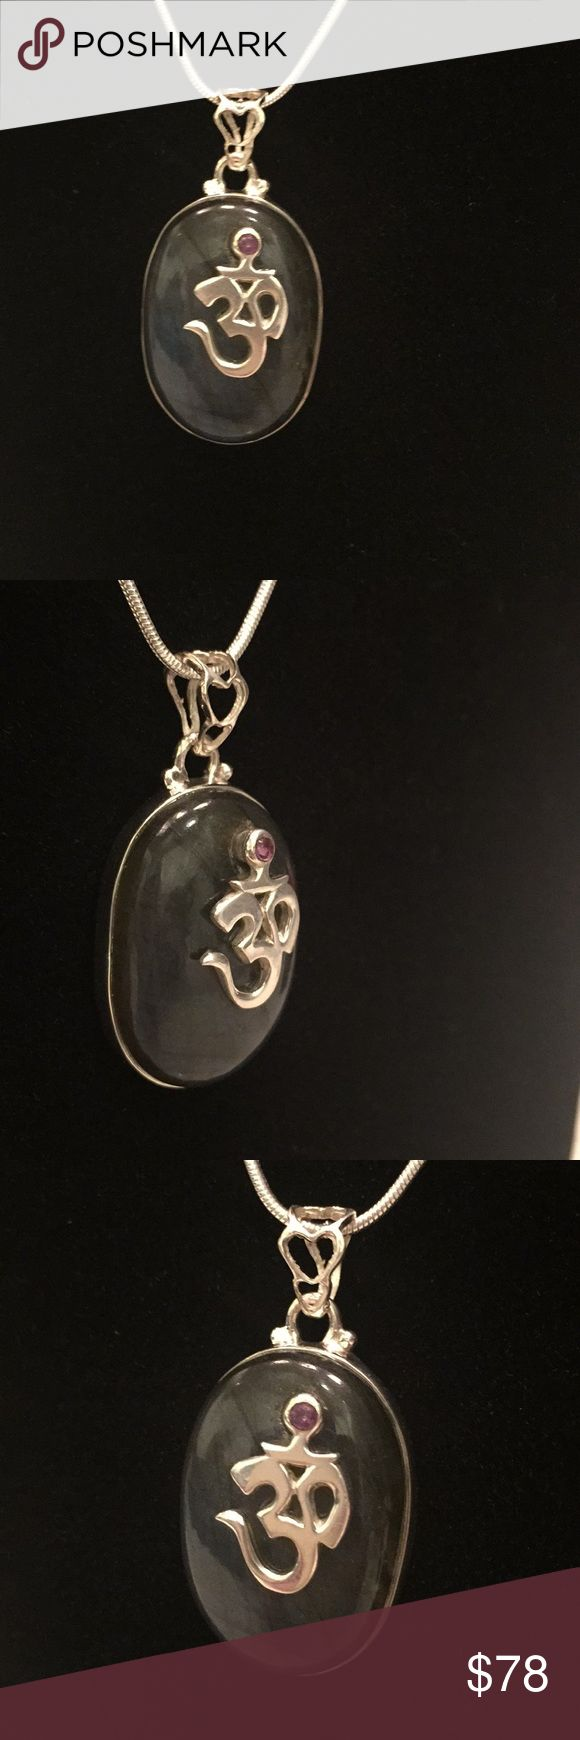 """🕉Peacock Blue Labradorite & Sterling Om Pendant 🕉Om 🕉 Peacock Blue Labradorite & Sterling Silver Pendant 💕Total length 1 1/5"""" 💕9.1 Grams   🌸Handcrafted and Set in Solid Sterling Silver 525  🌸Artisan Made one of a kind Piece  🌸Reiki Infused for the specific Gemstones by Me  🌸Great gift for Yourself or a loved one ( will send in a gift box) 18"""" Silver chain included 💕 🌸With Love 💕Aria Urban Love Jewelry Necklaces"""